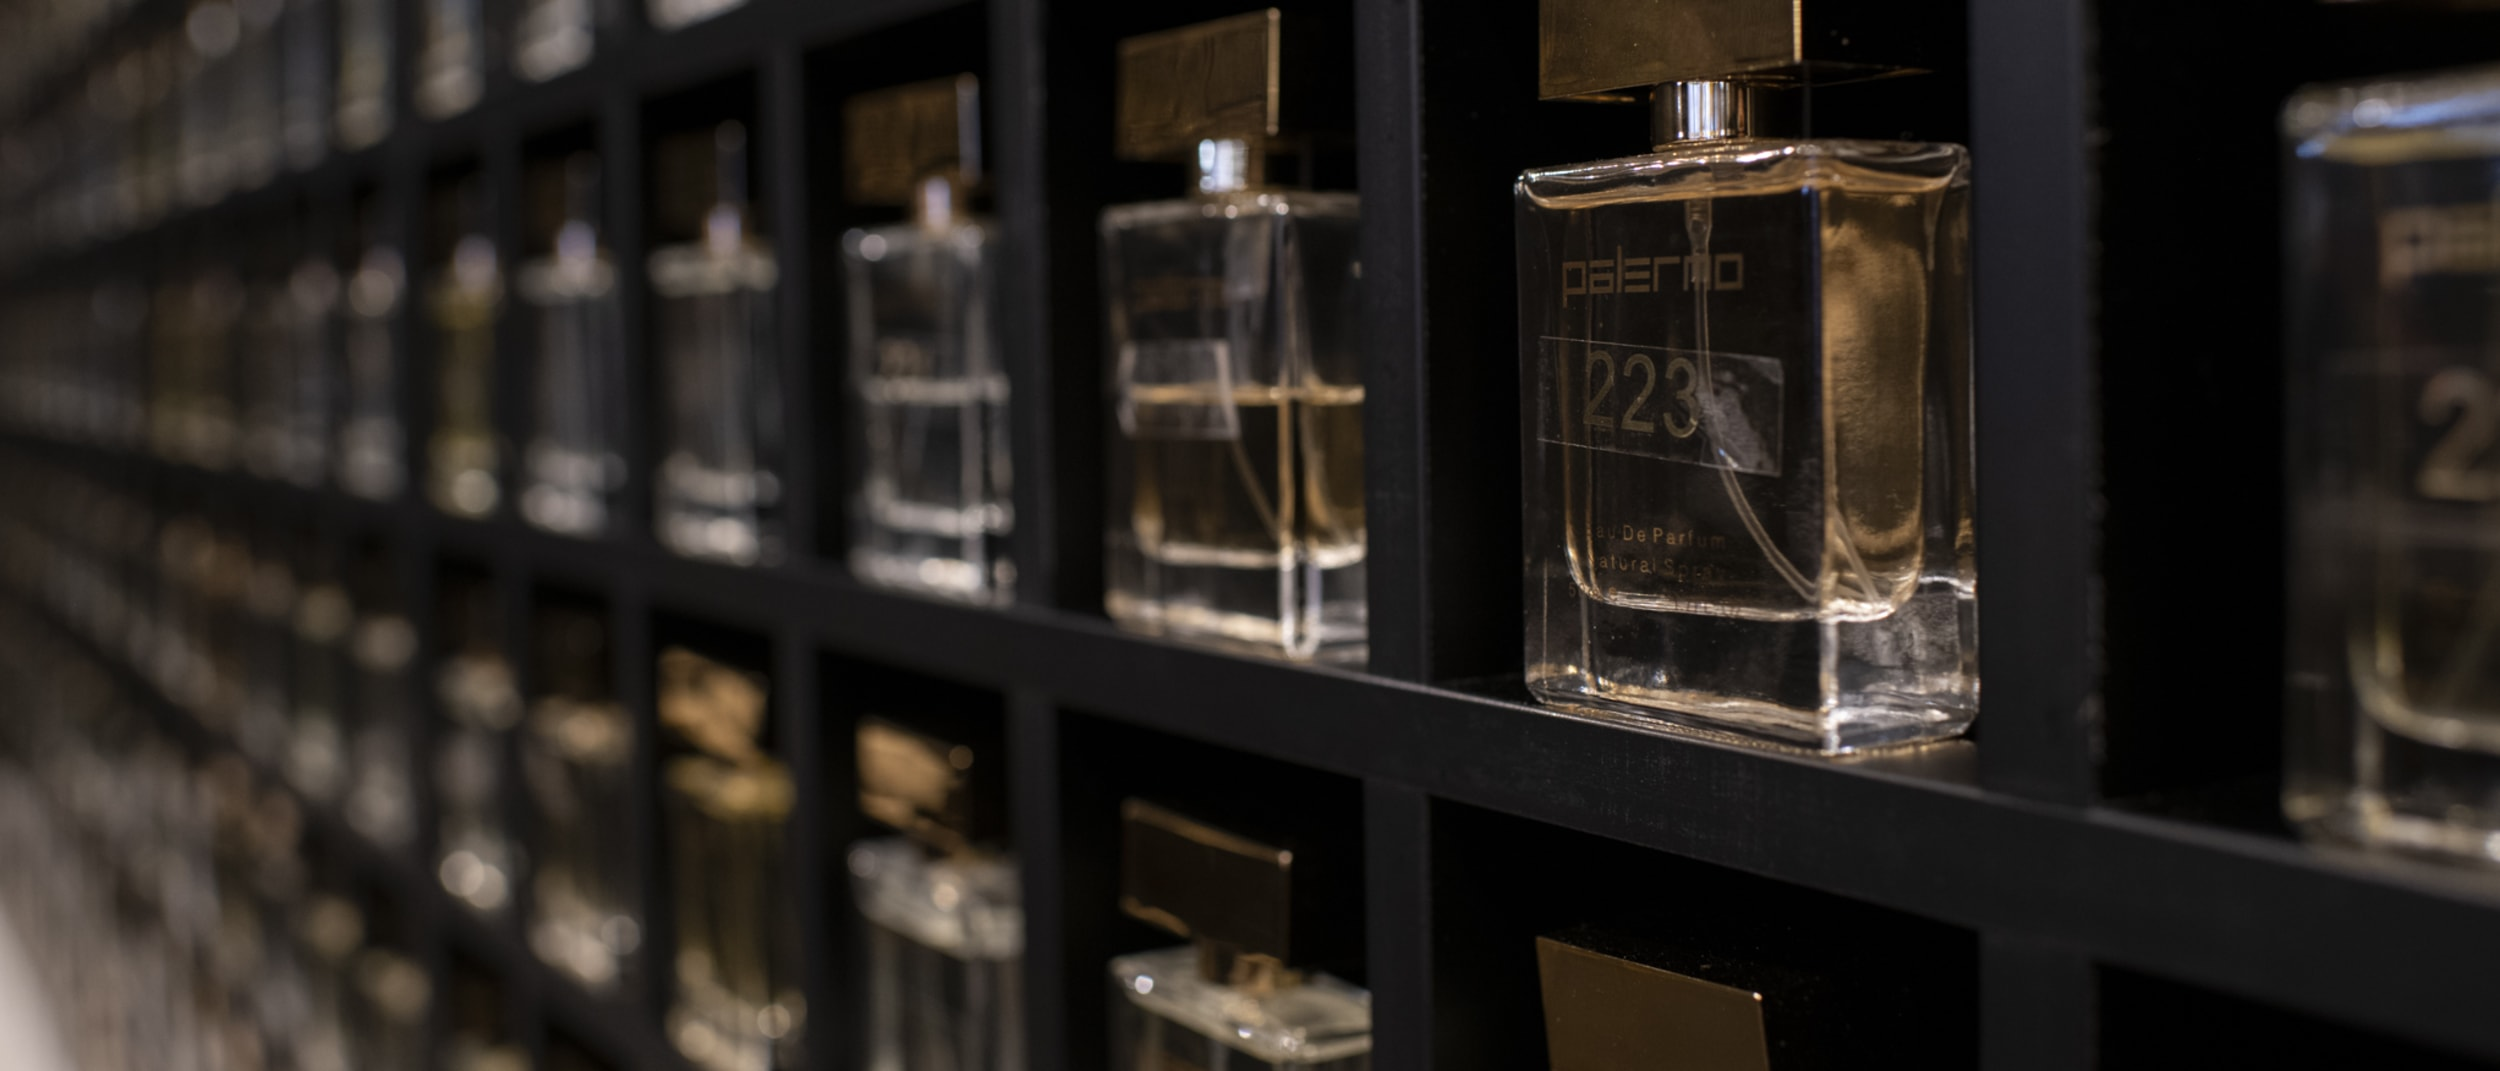 Palermo Perfumes is now open